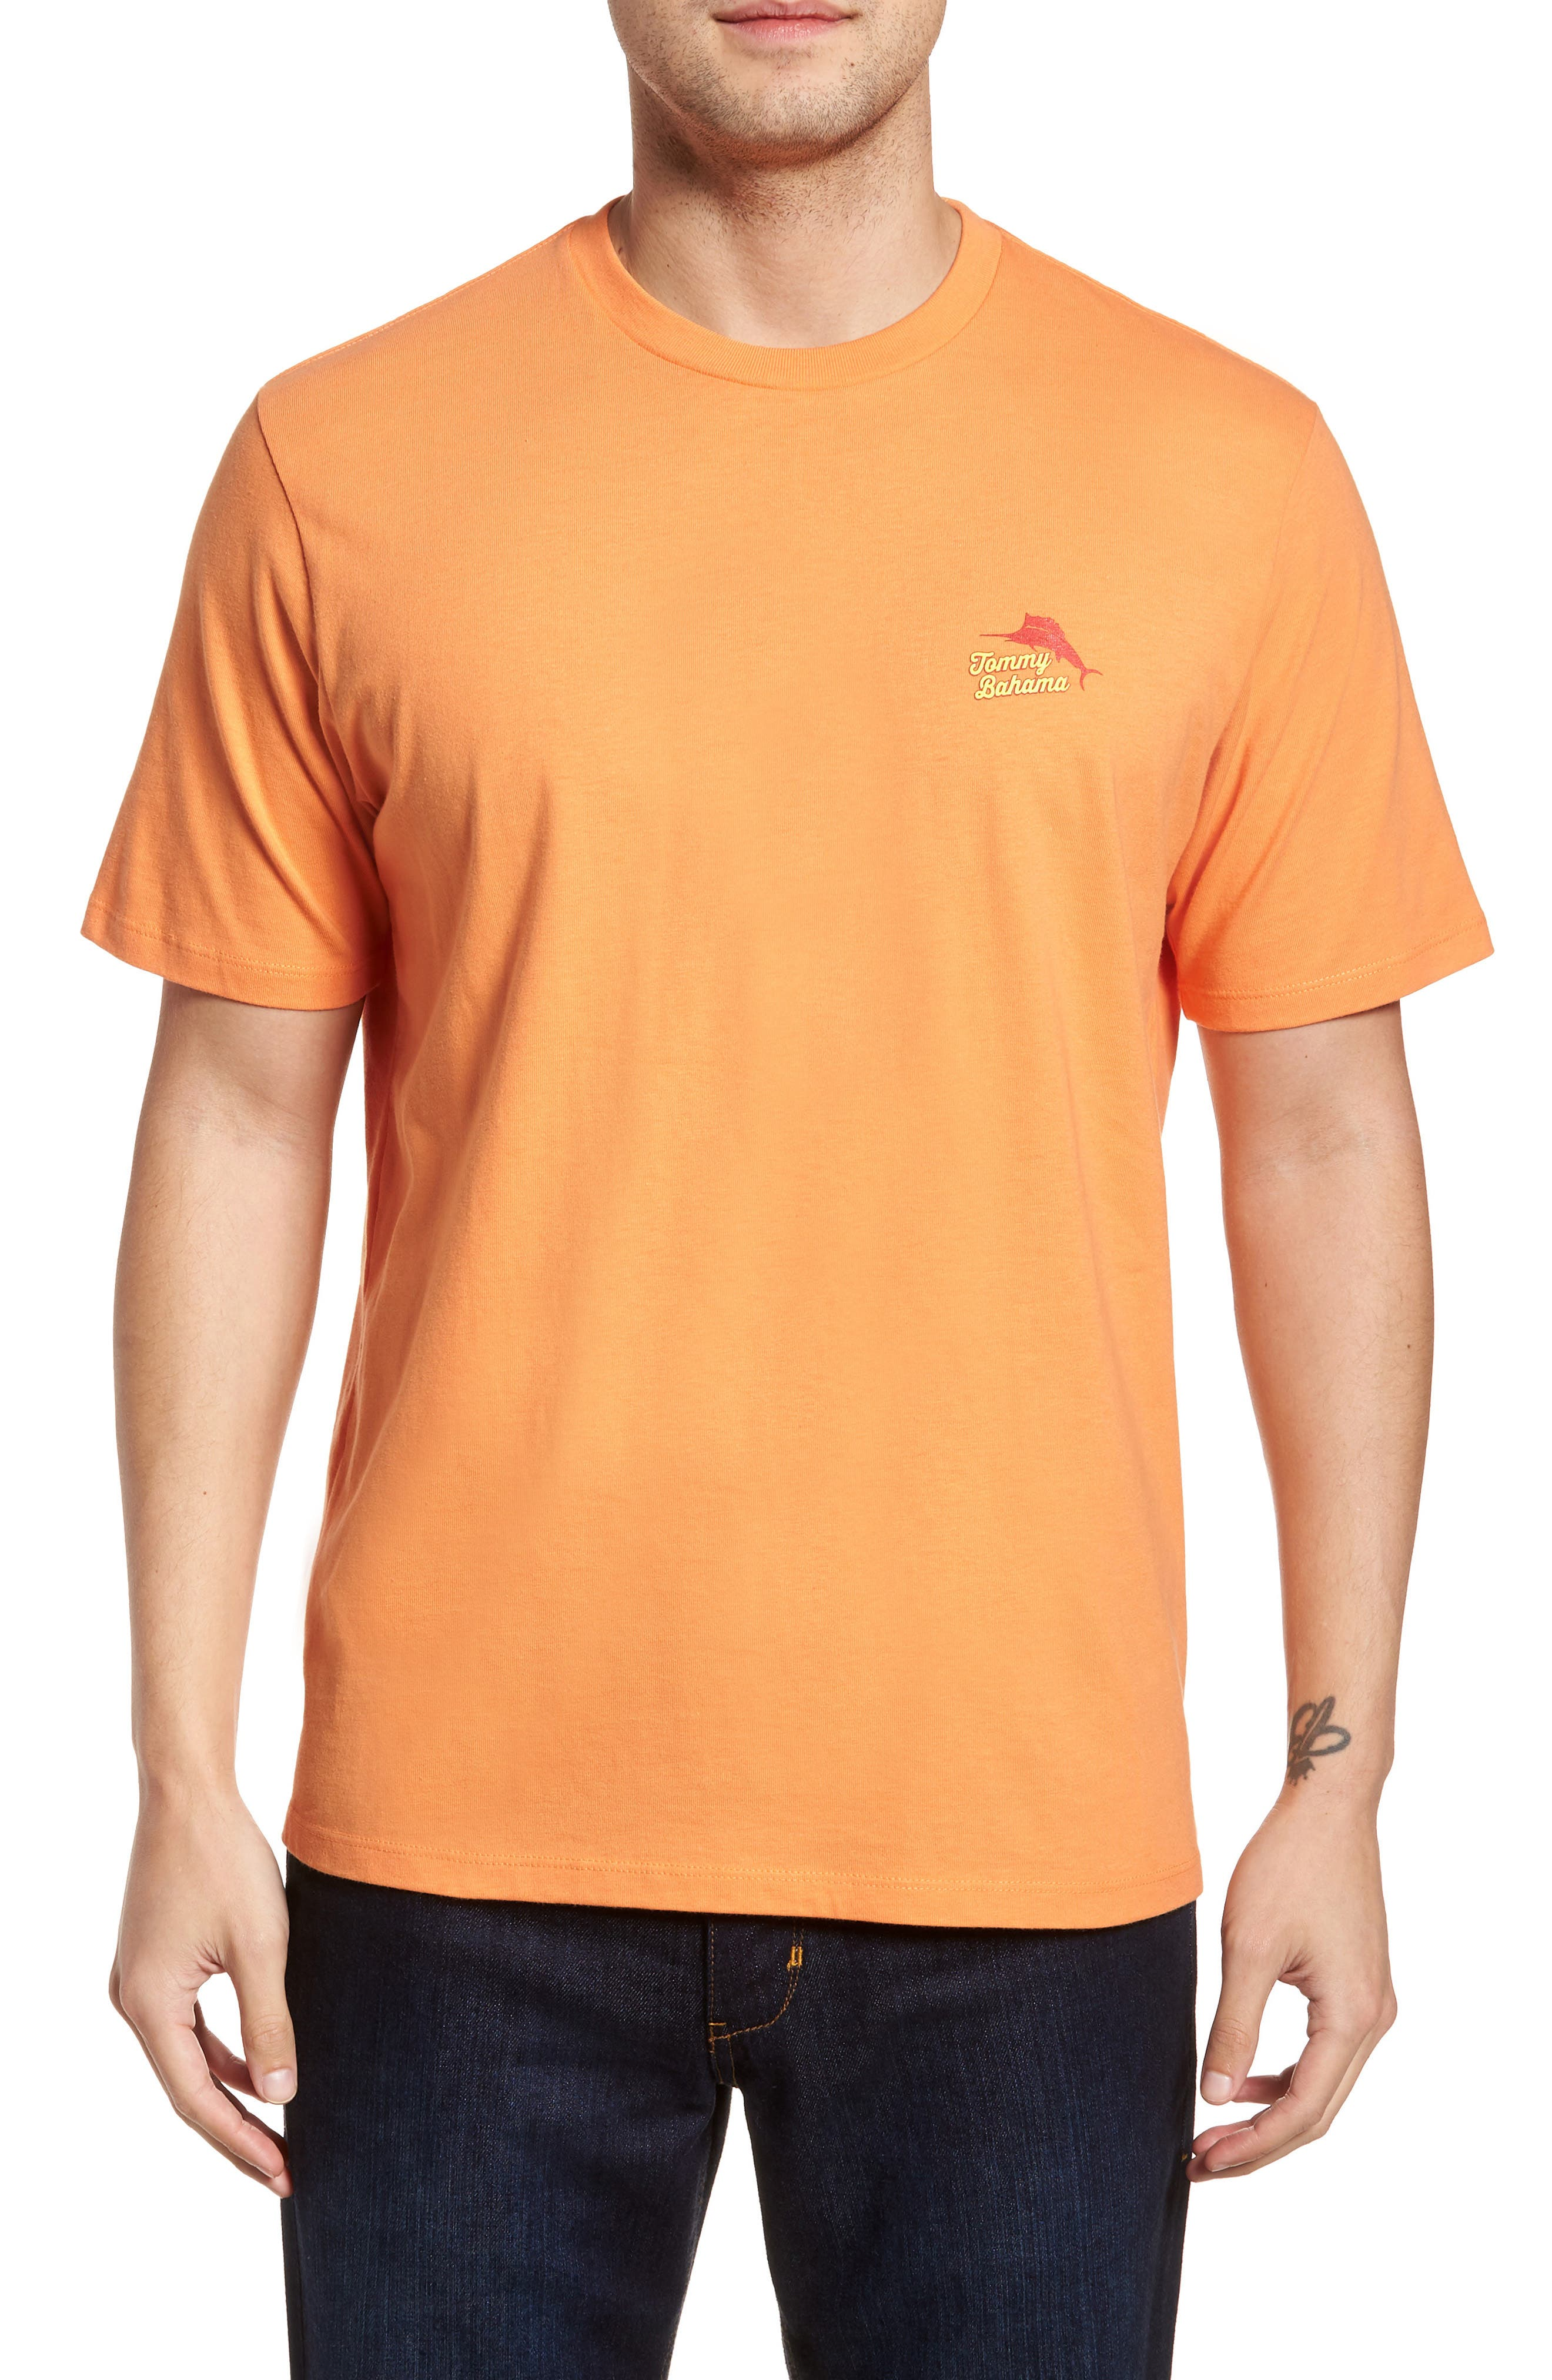 Ryes to the Occasion T-Shirt,                             Main thumbnail 1, color,                             800